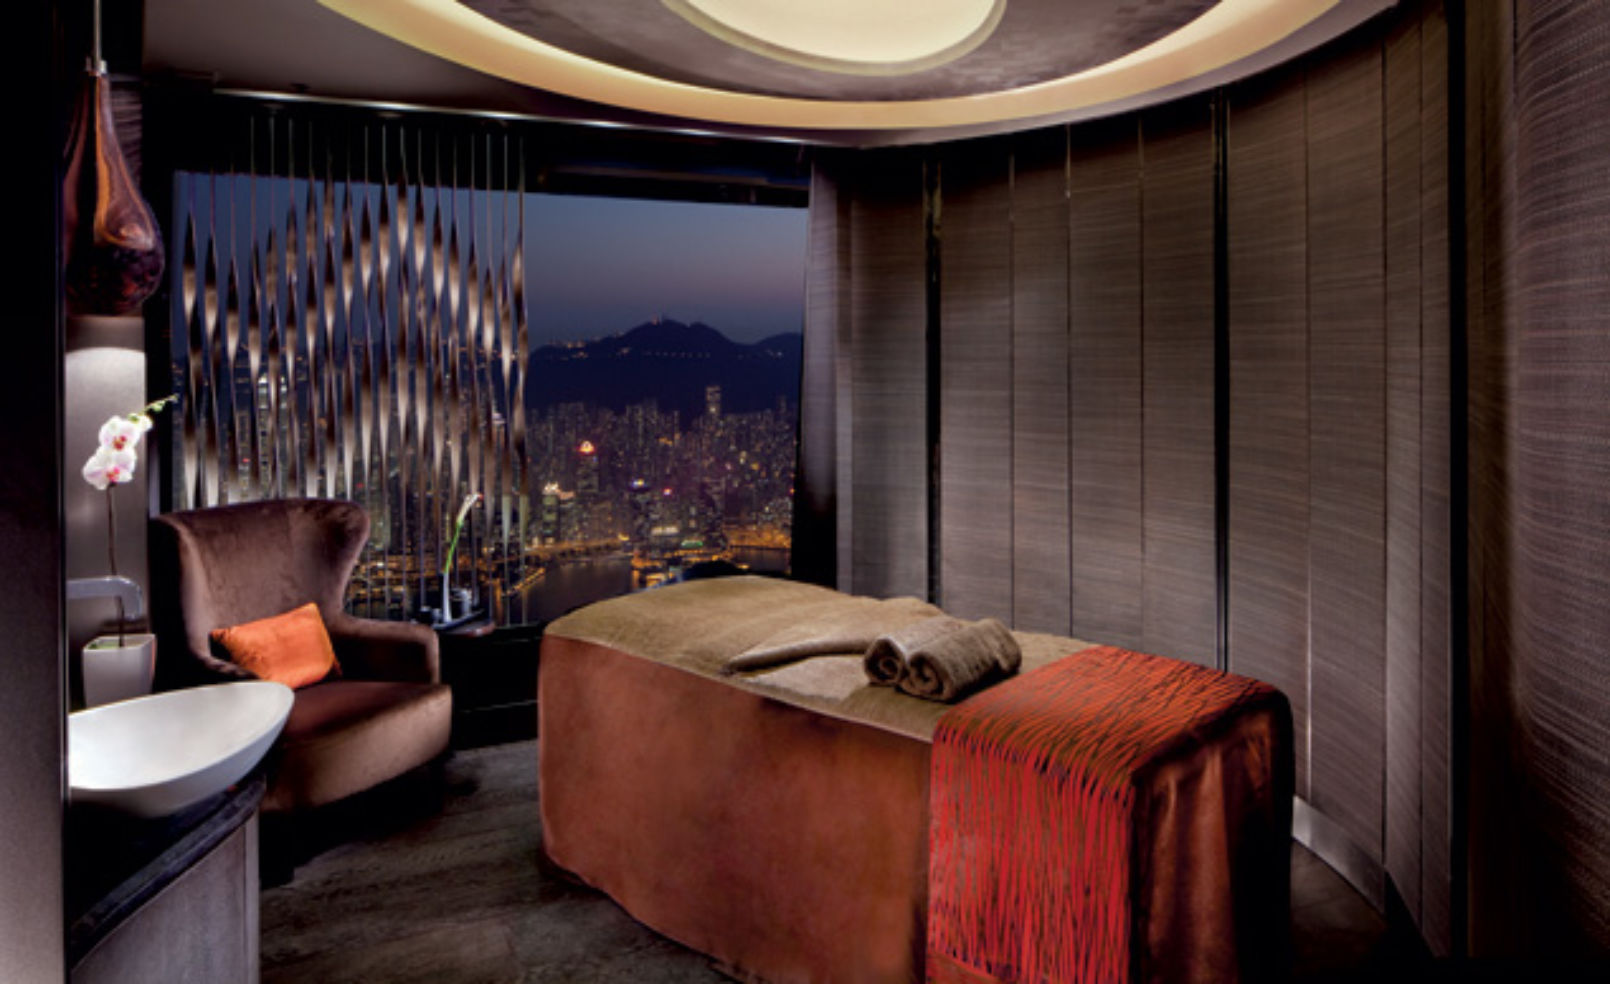 Spa Treatment room with View